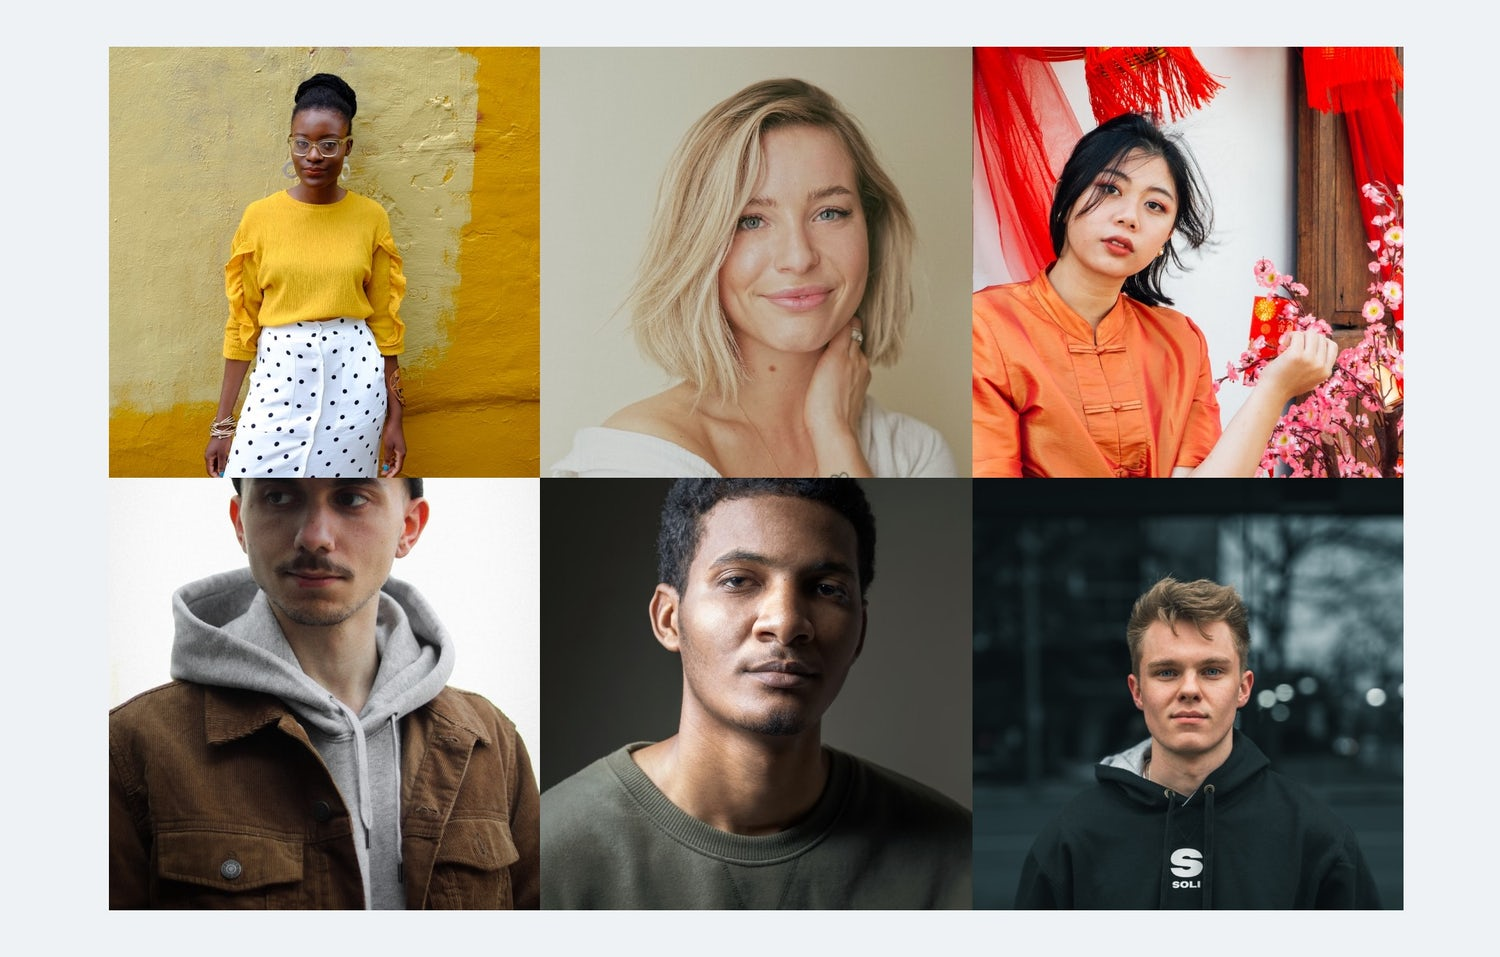 A grid of very different colour-treated profile shots of people